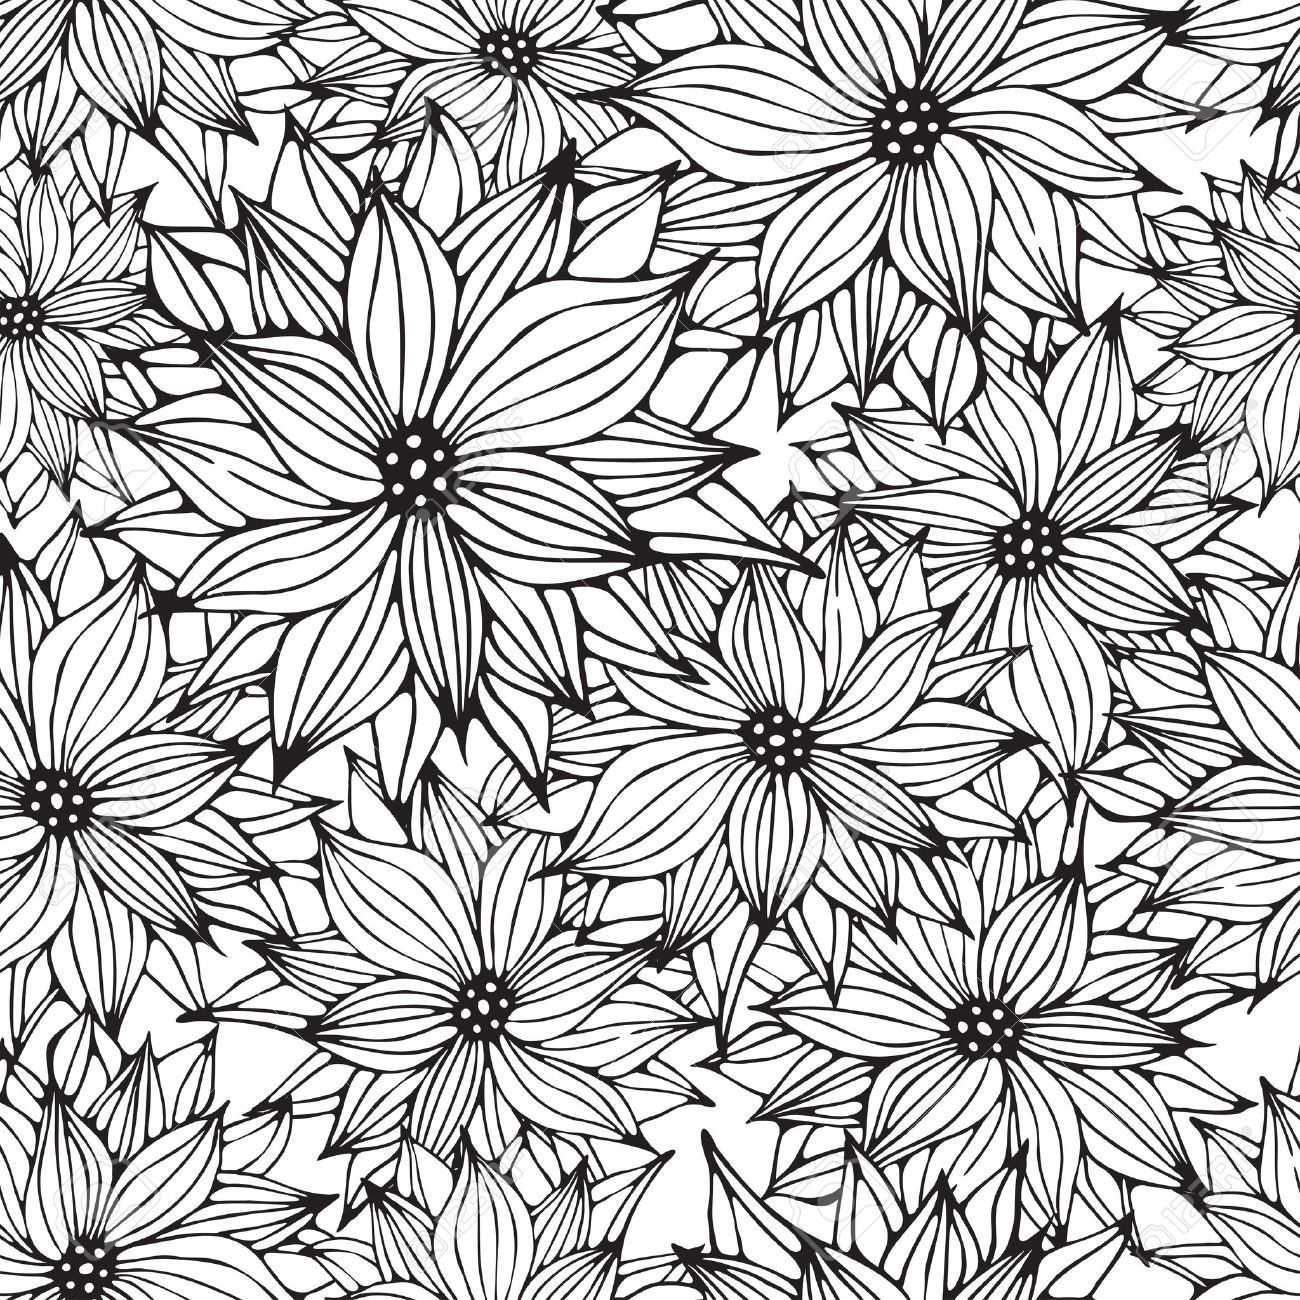 Line Drawing Flower Pattern : Seamless floral white black background flower hand drawn